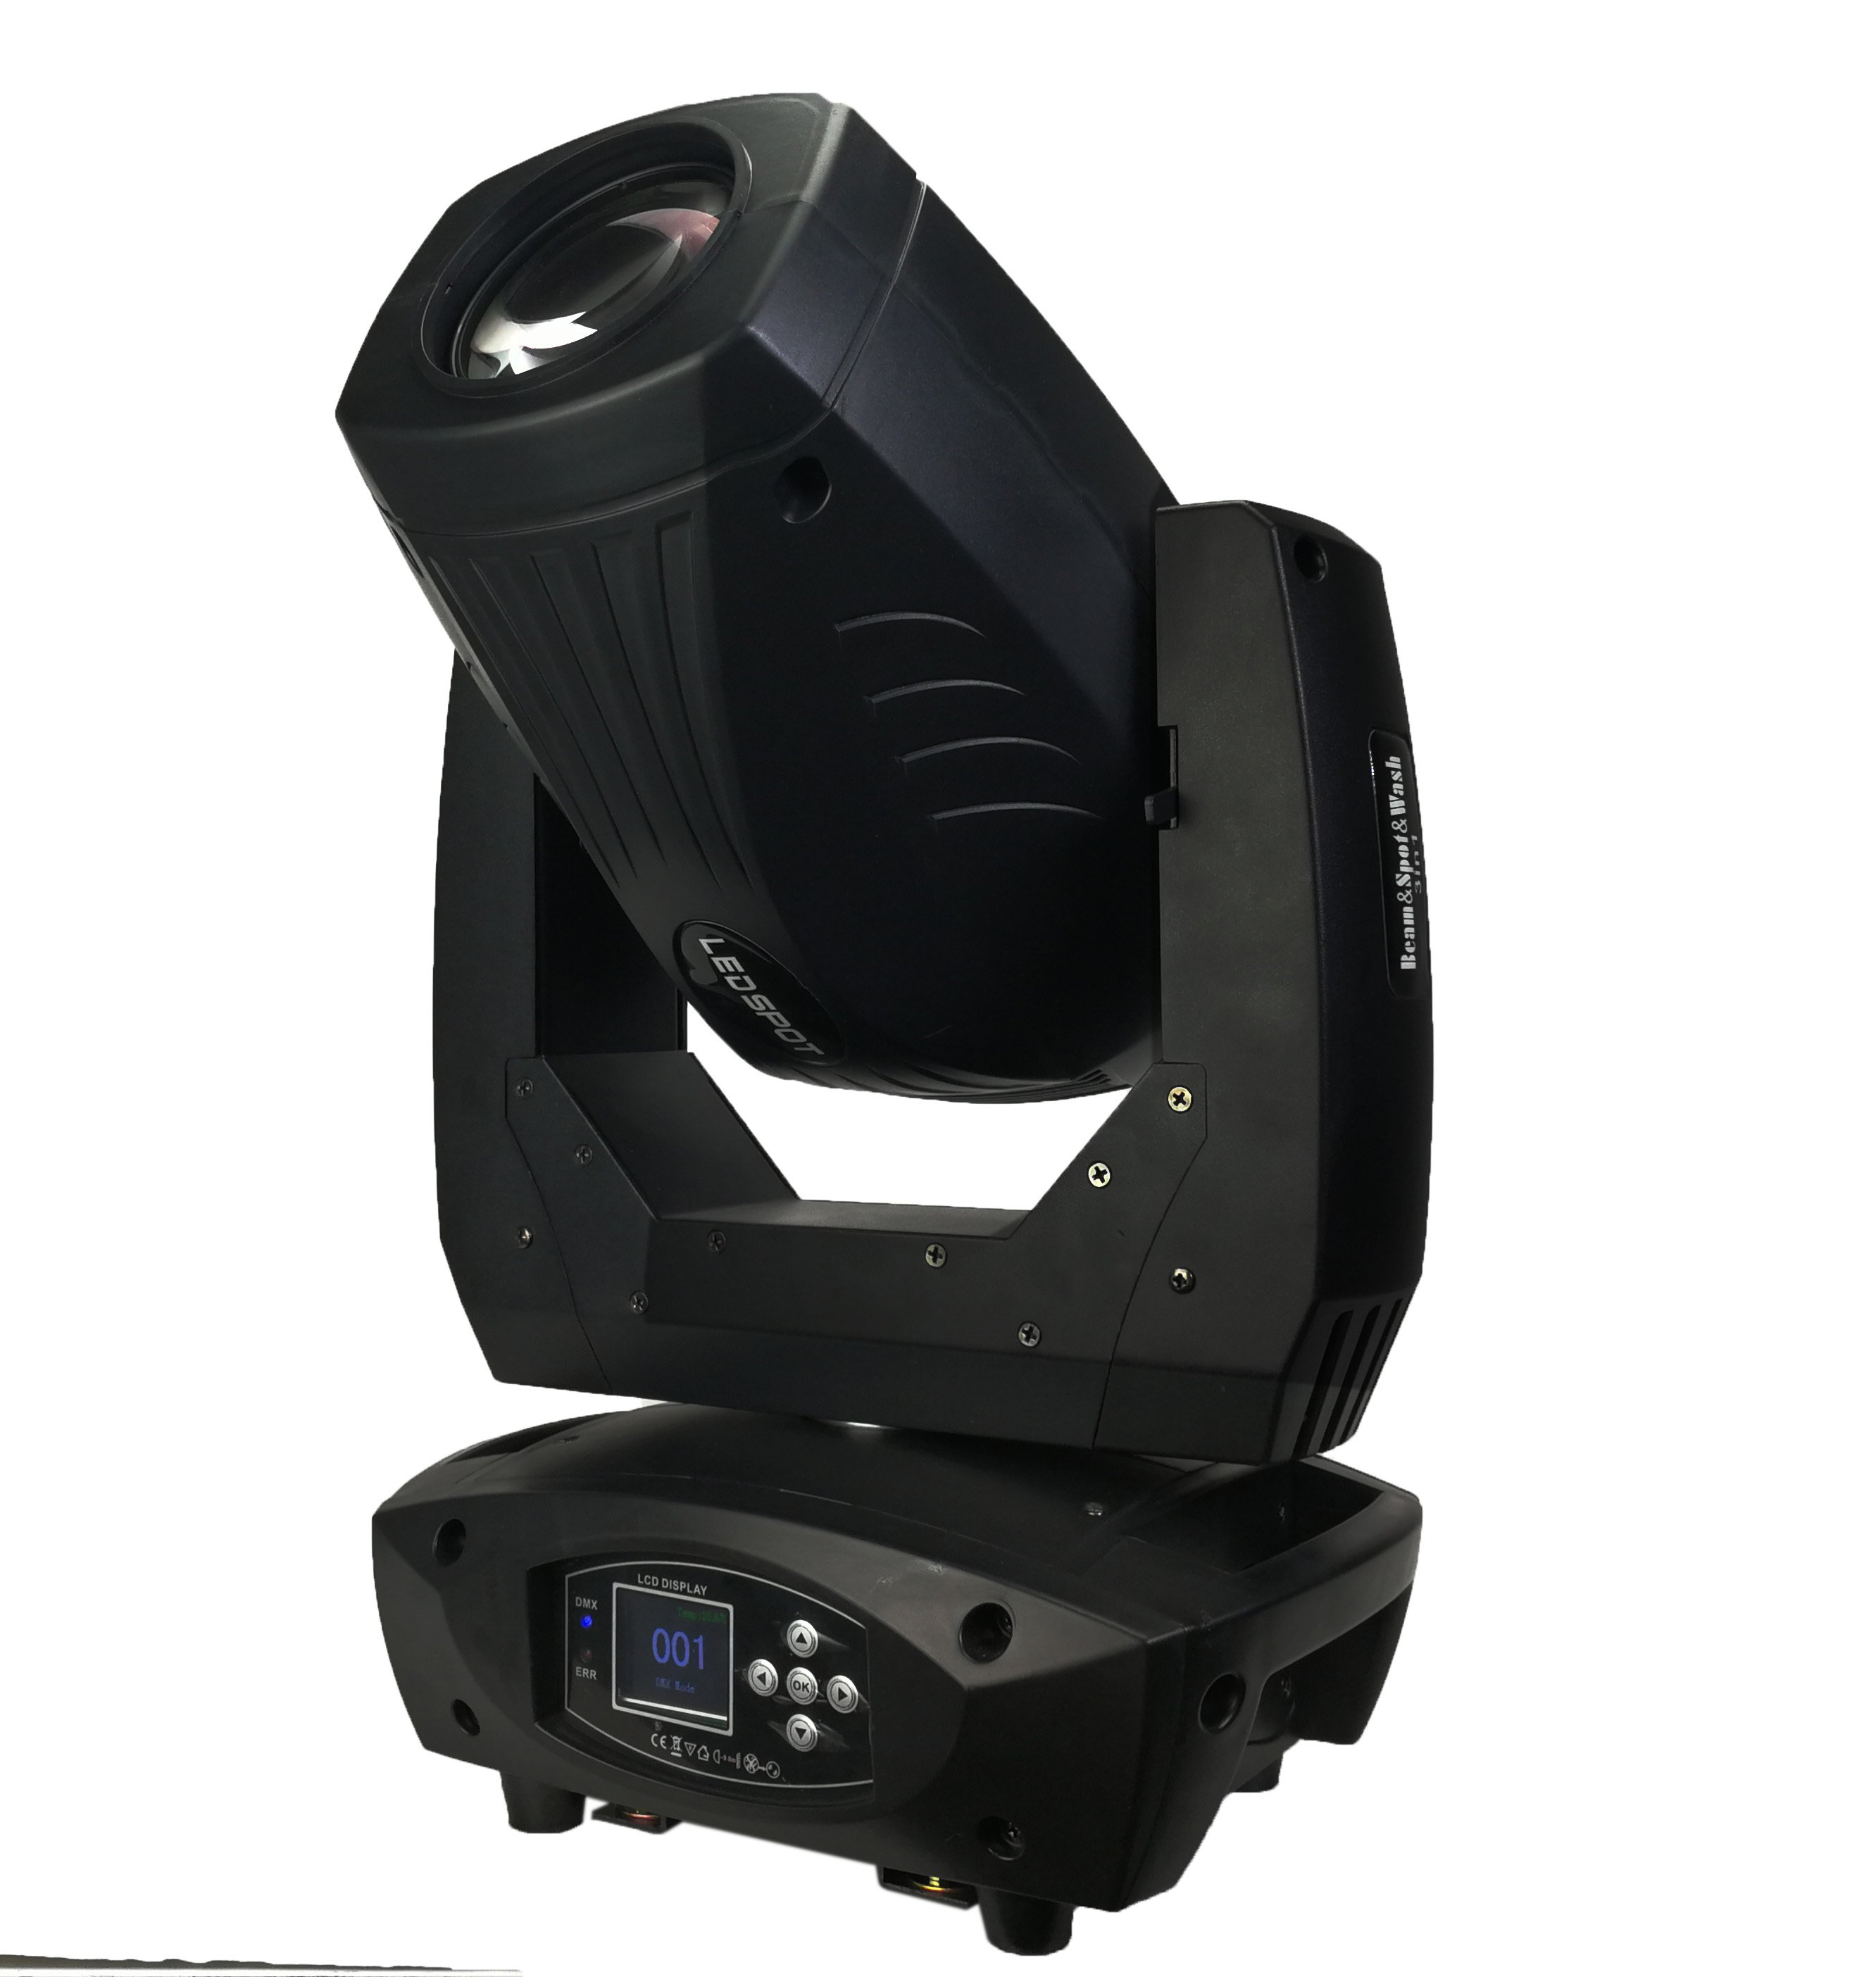 Songlites 200W White LED Beam Spot Moving Head Light SL-1220 Spot LED Moving Head Light image3